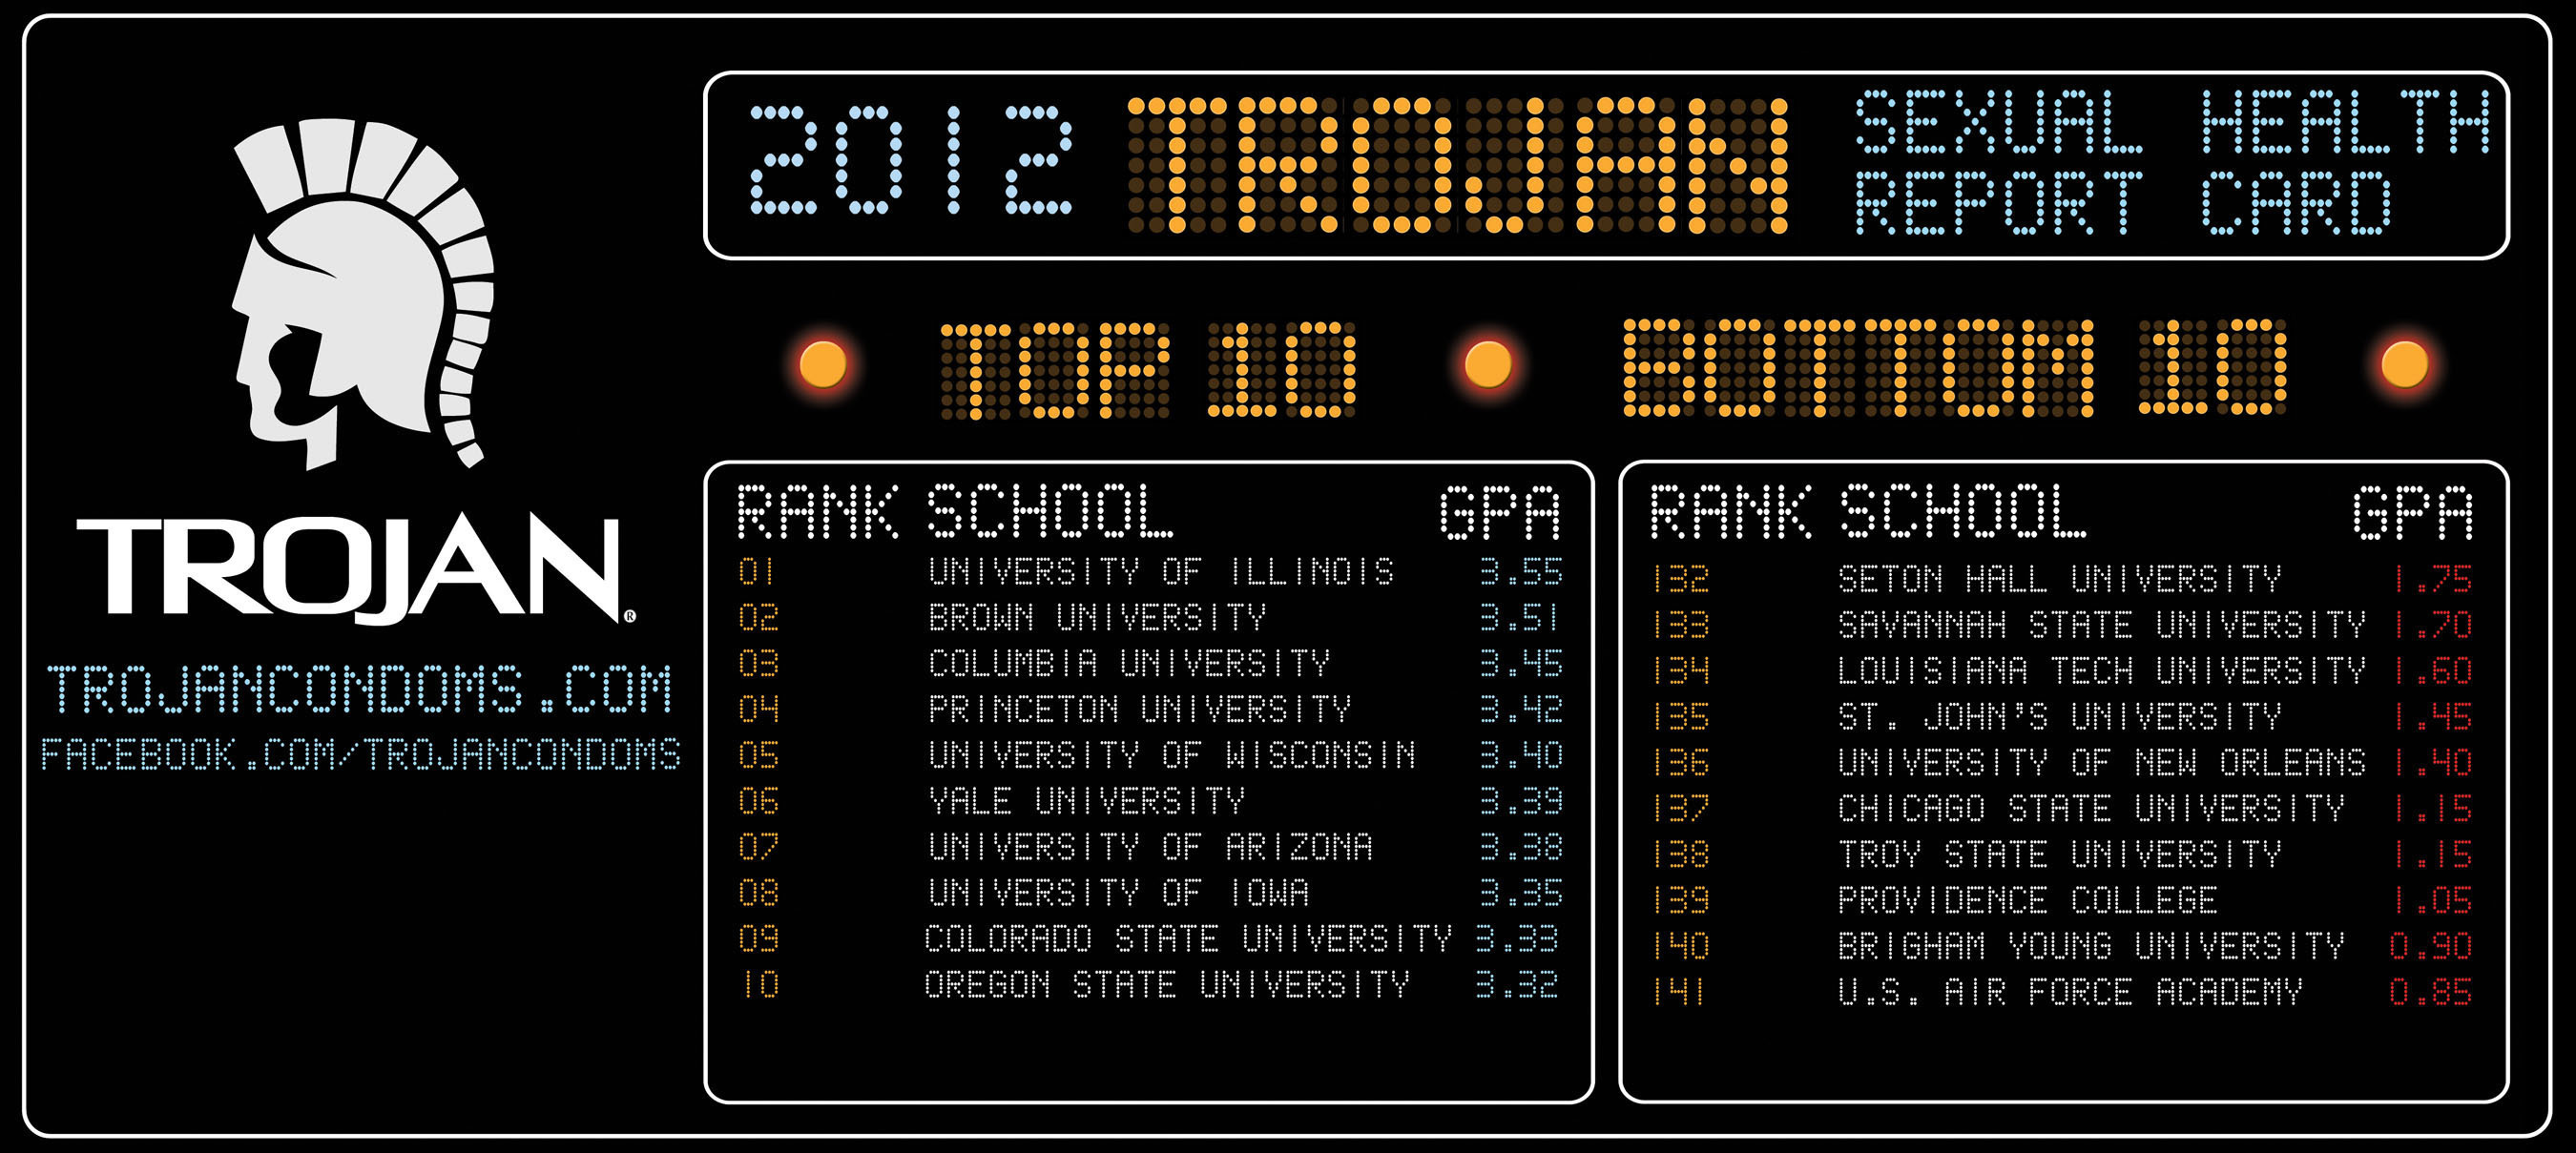 2012 Trojan Sexual Health Report Card -- The Annual Rankings of Sexual Health Resources at American Colleges and Universities.  (PRNewsFoto/TROJAN(TM) Brand Condoms)